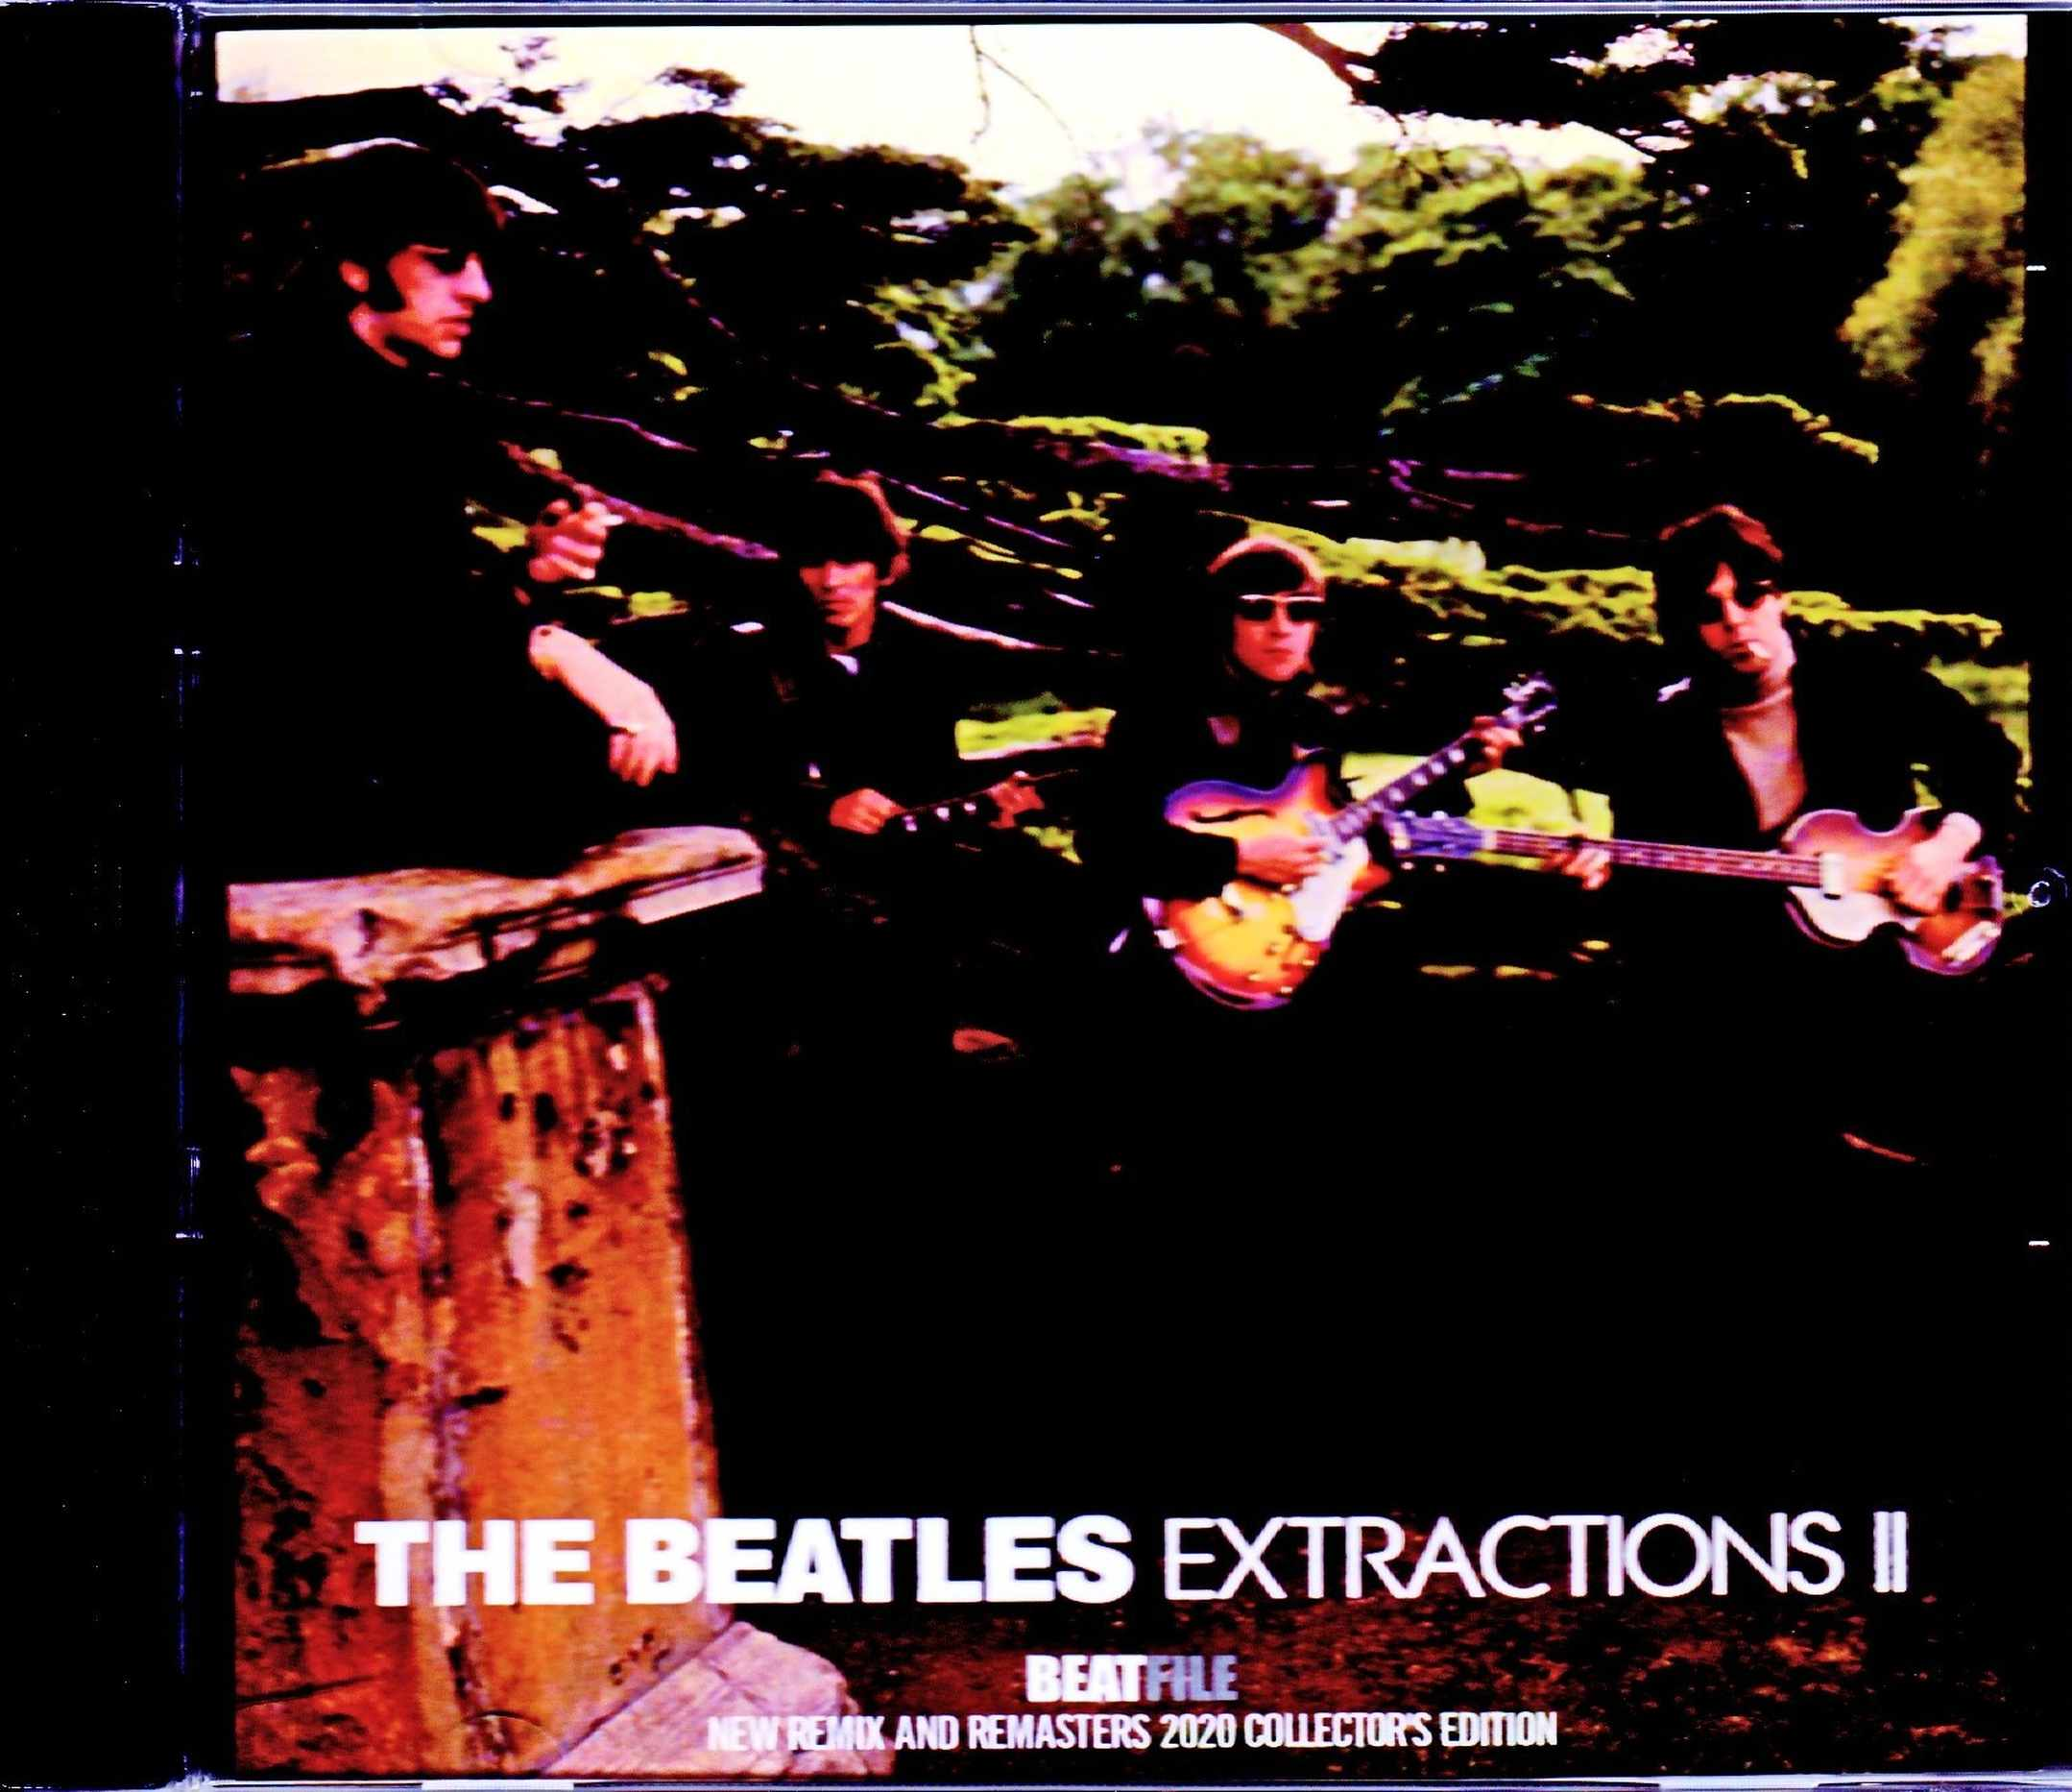 Beatles ビートルズ/Extractions II New Remix And Remasters 2020